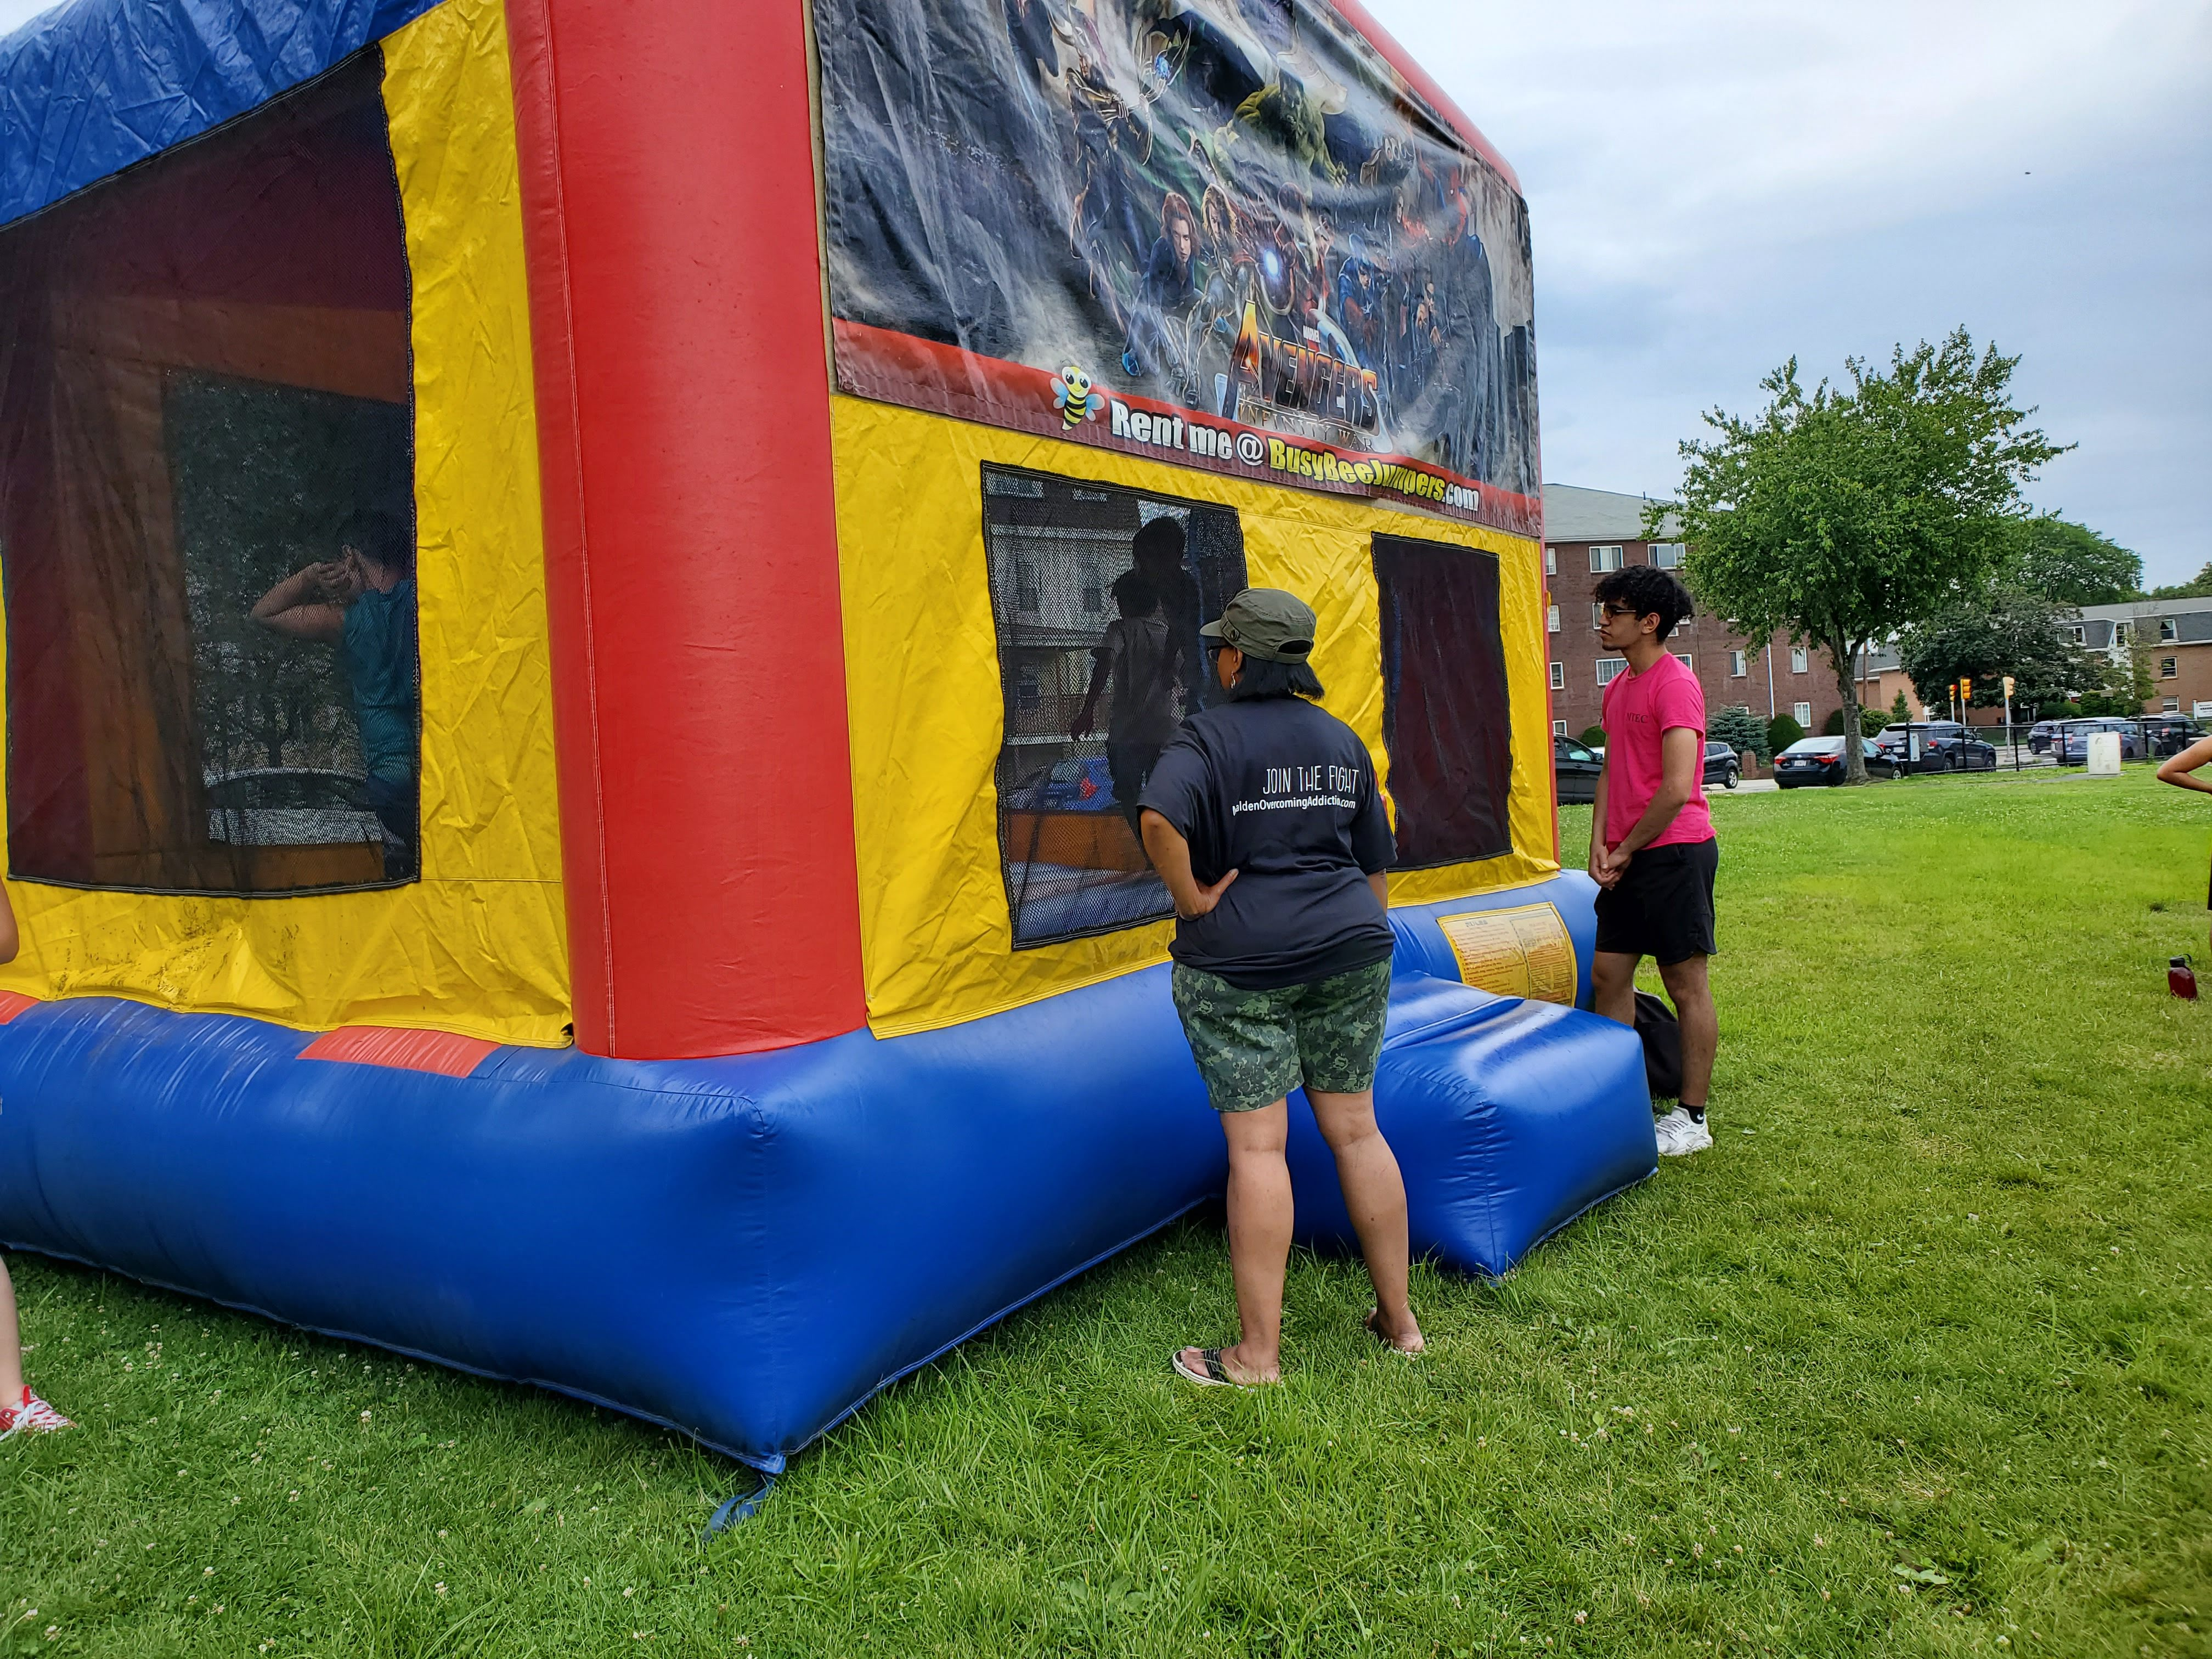 Teen watches over the Bouncy house to ensure Safety